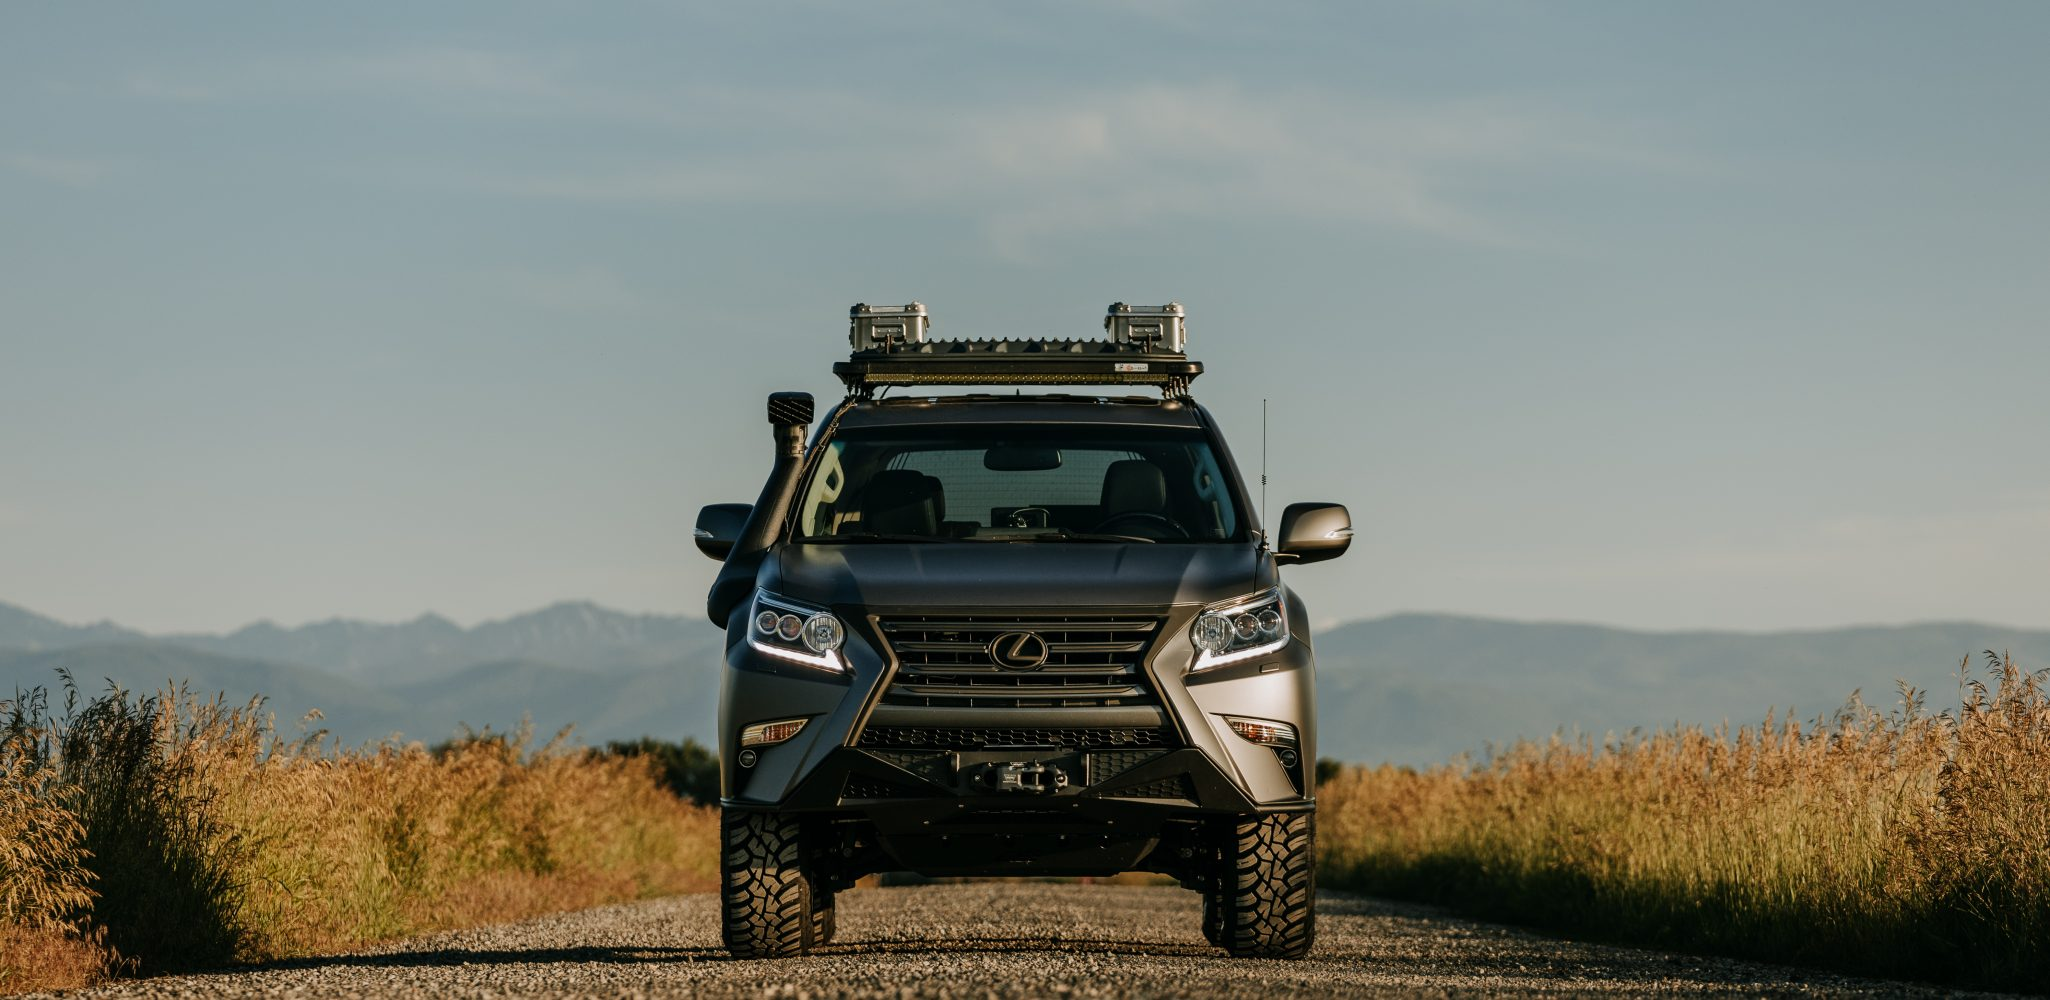 Lexus GXOR Concept is Made for Adventure